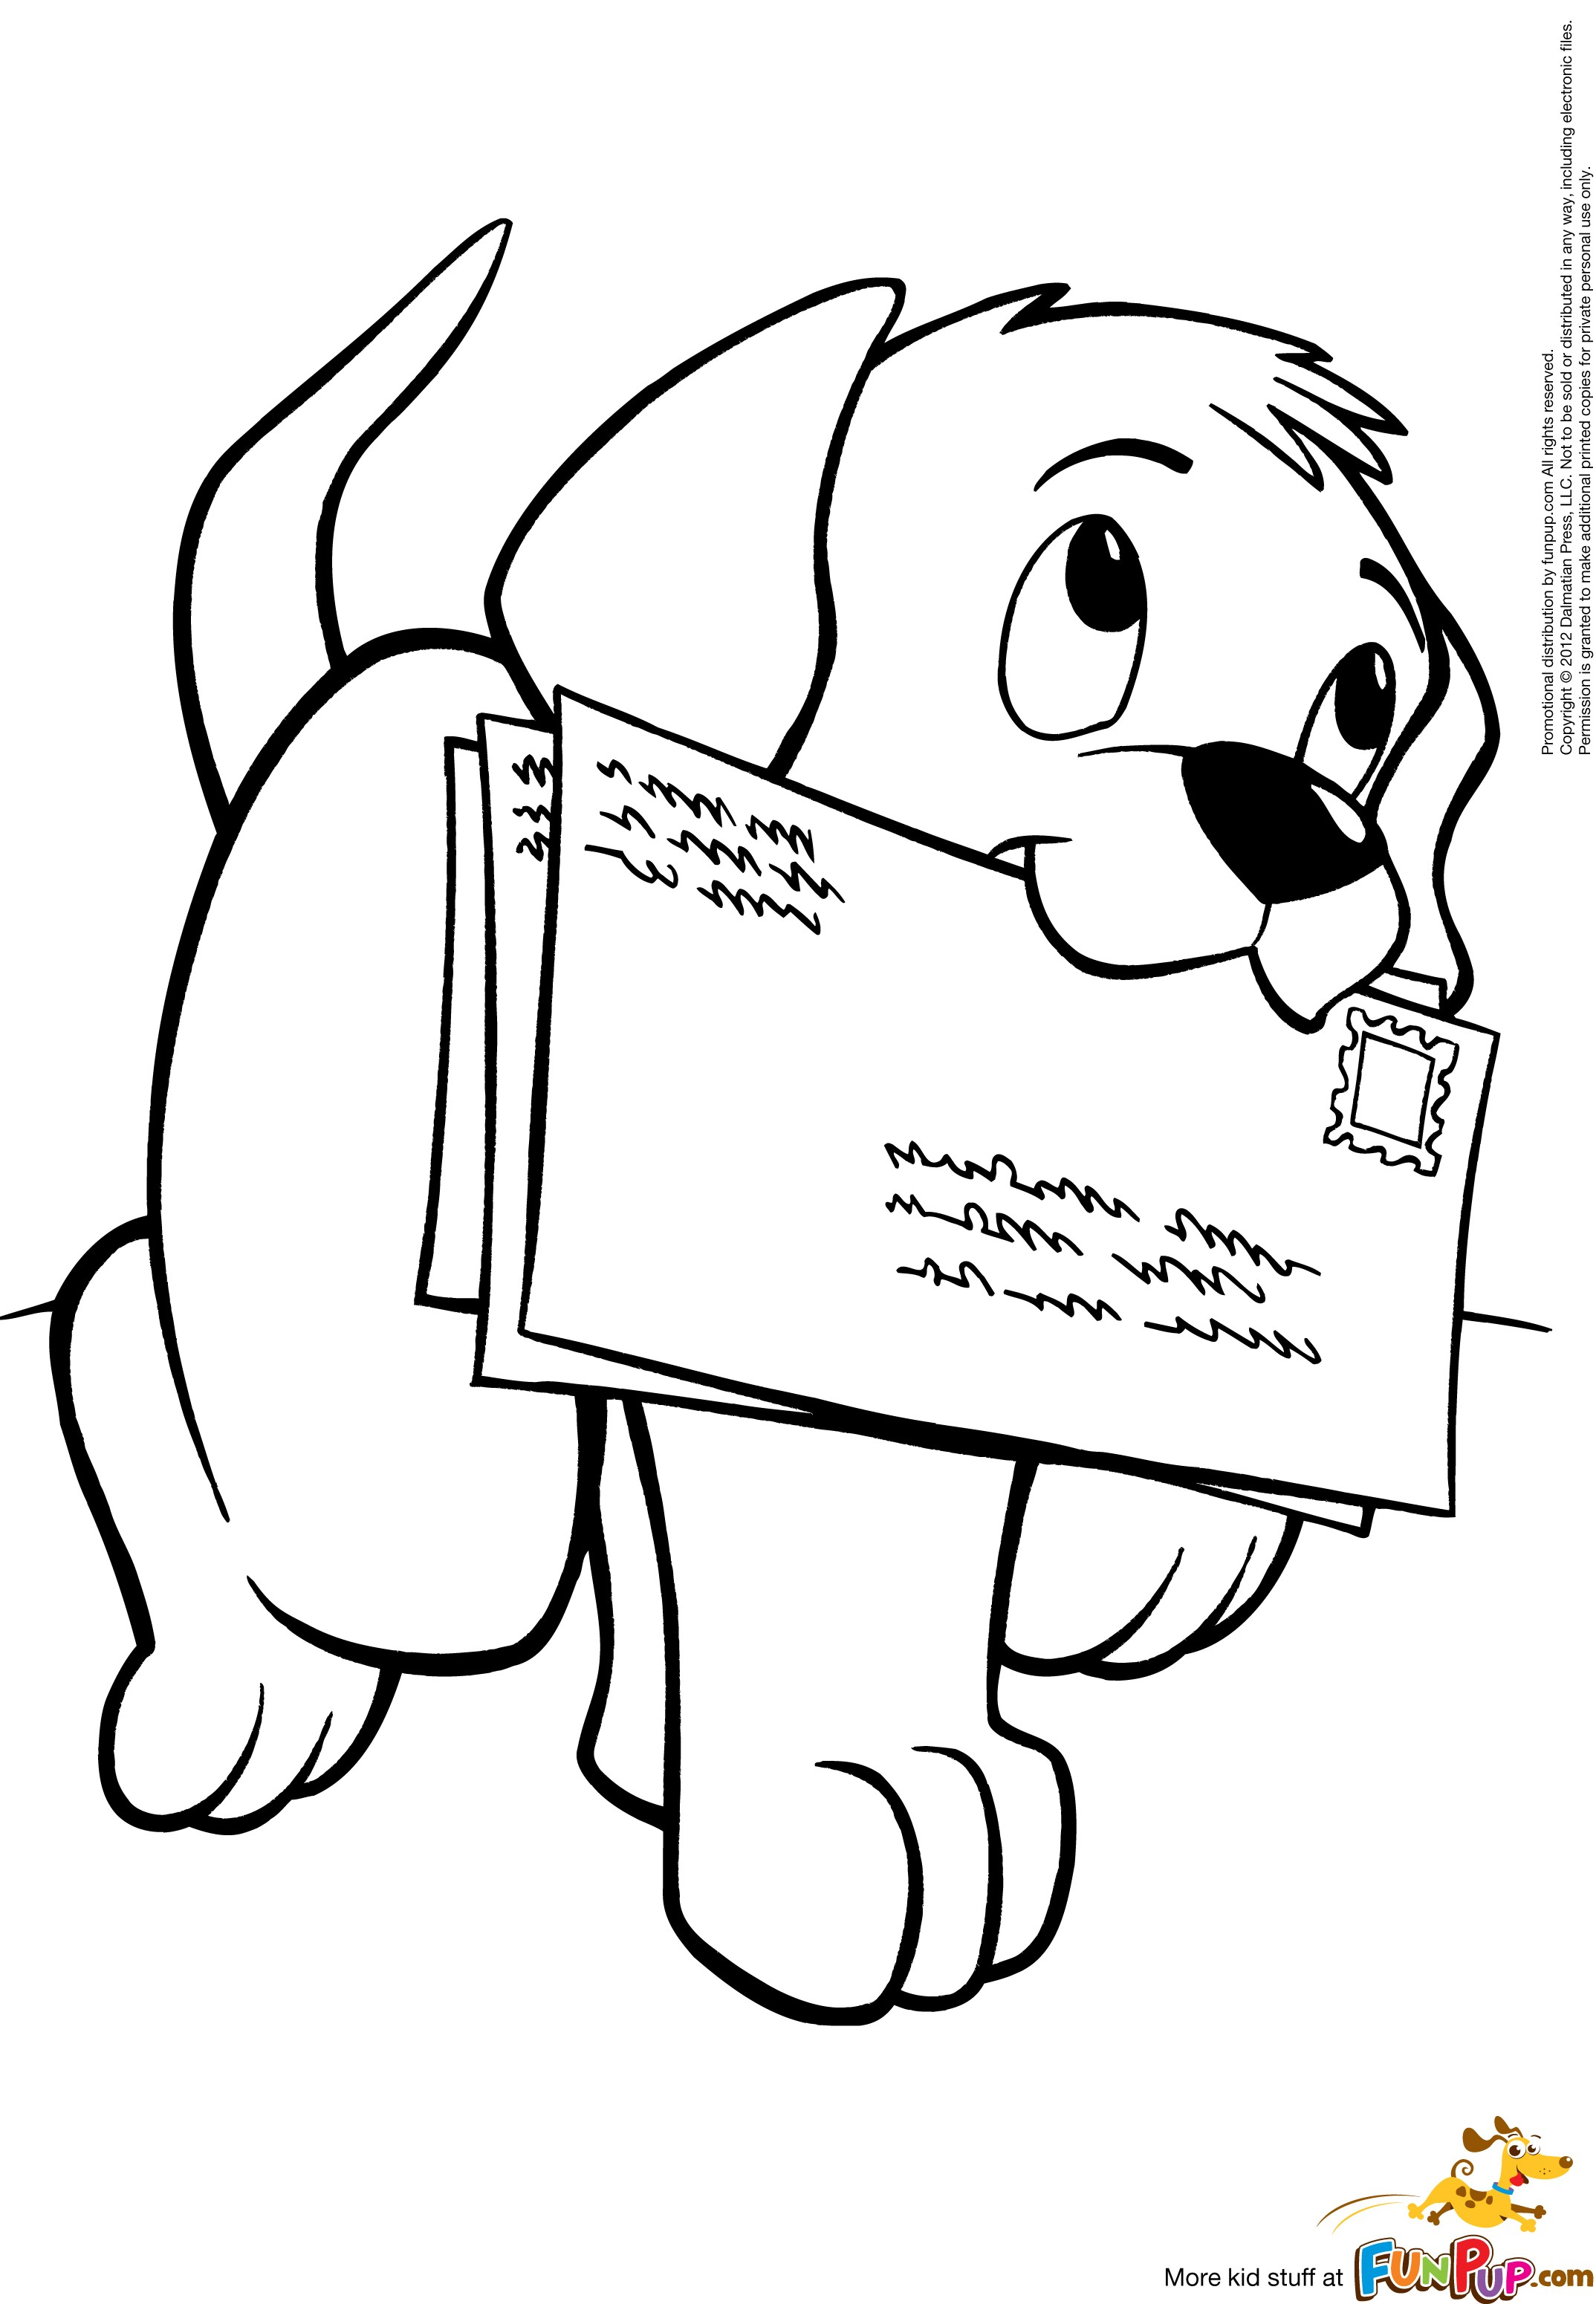 2148x3101 Awesome Coloring Pages Of Cute Dogs And Puppies Remarkable Print